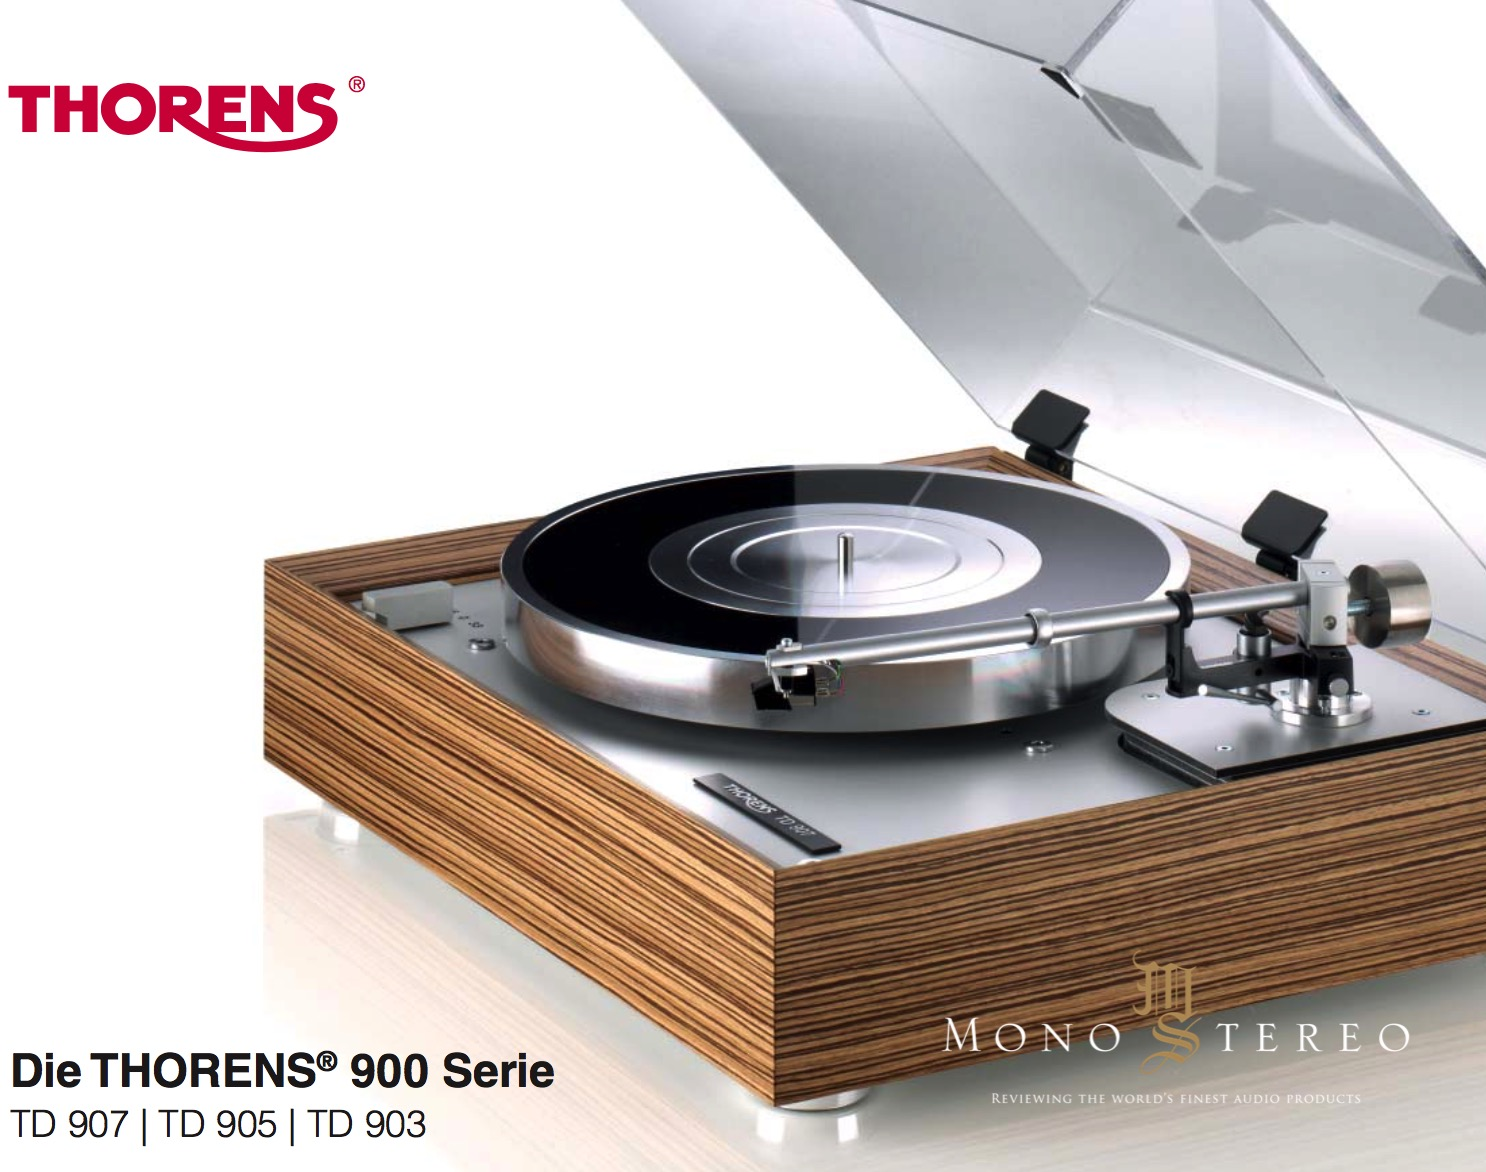 mono and stereo high end audio magazine new thorens td. Black Bedroom Furniture Sets. Home Design Ideas